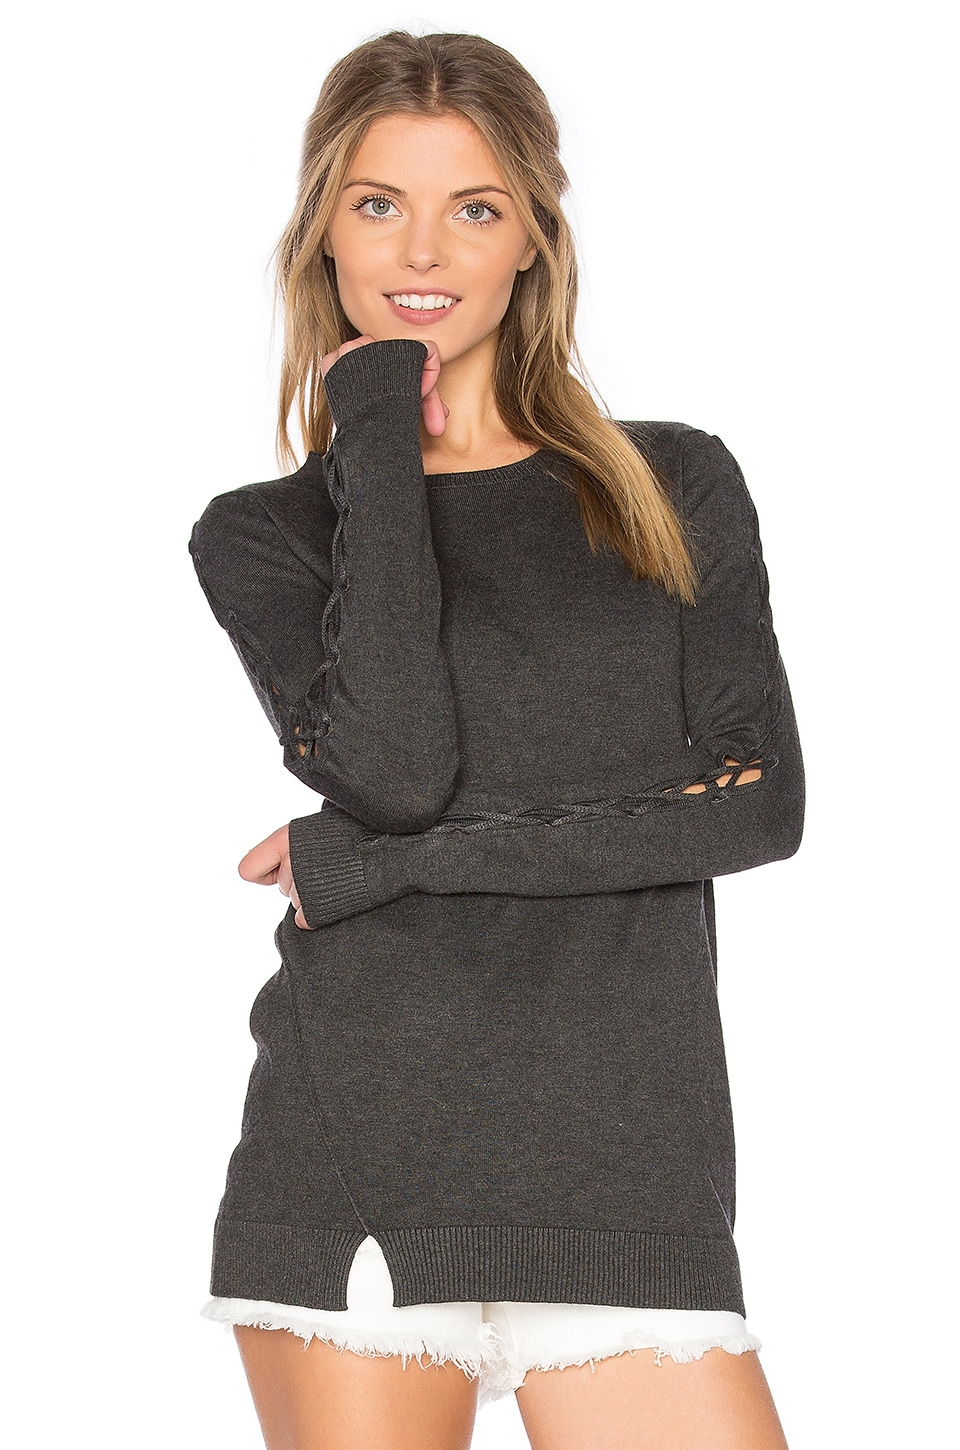 Central Park West Cambridge Lace Up Bell Sleeve Sweater in Charcoal